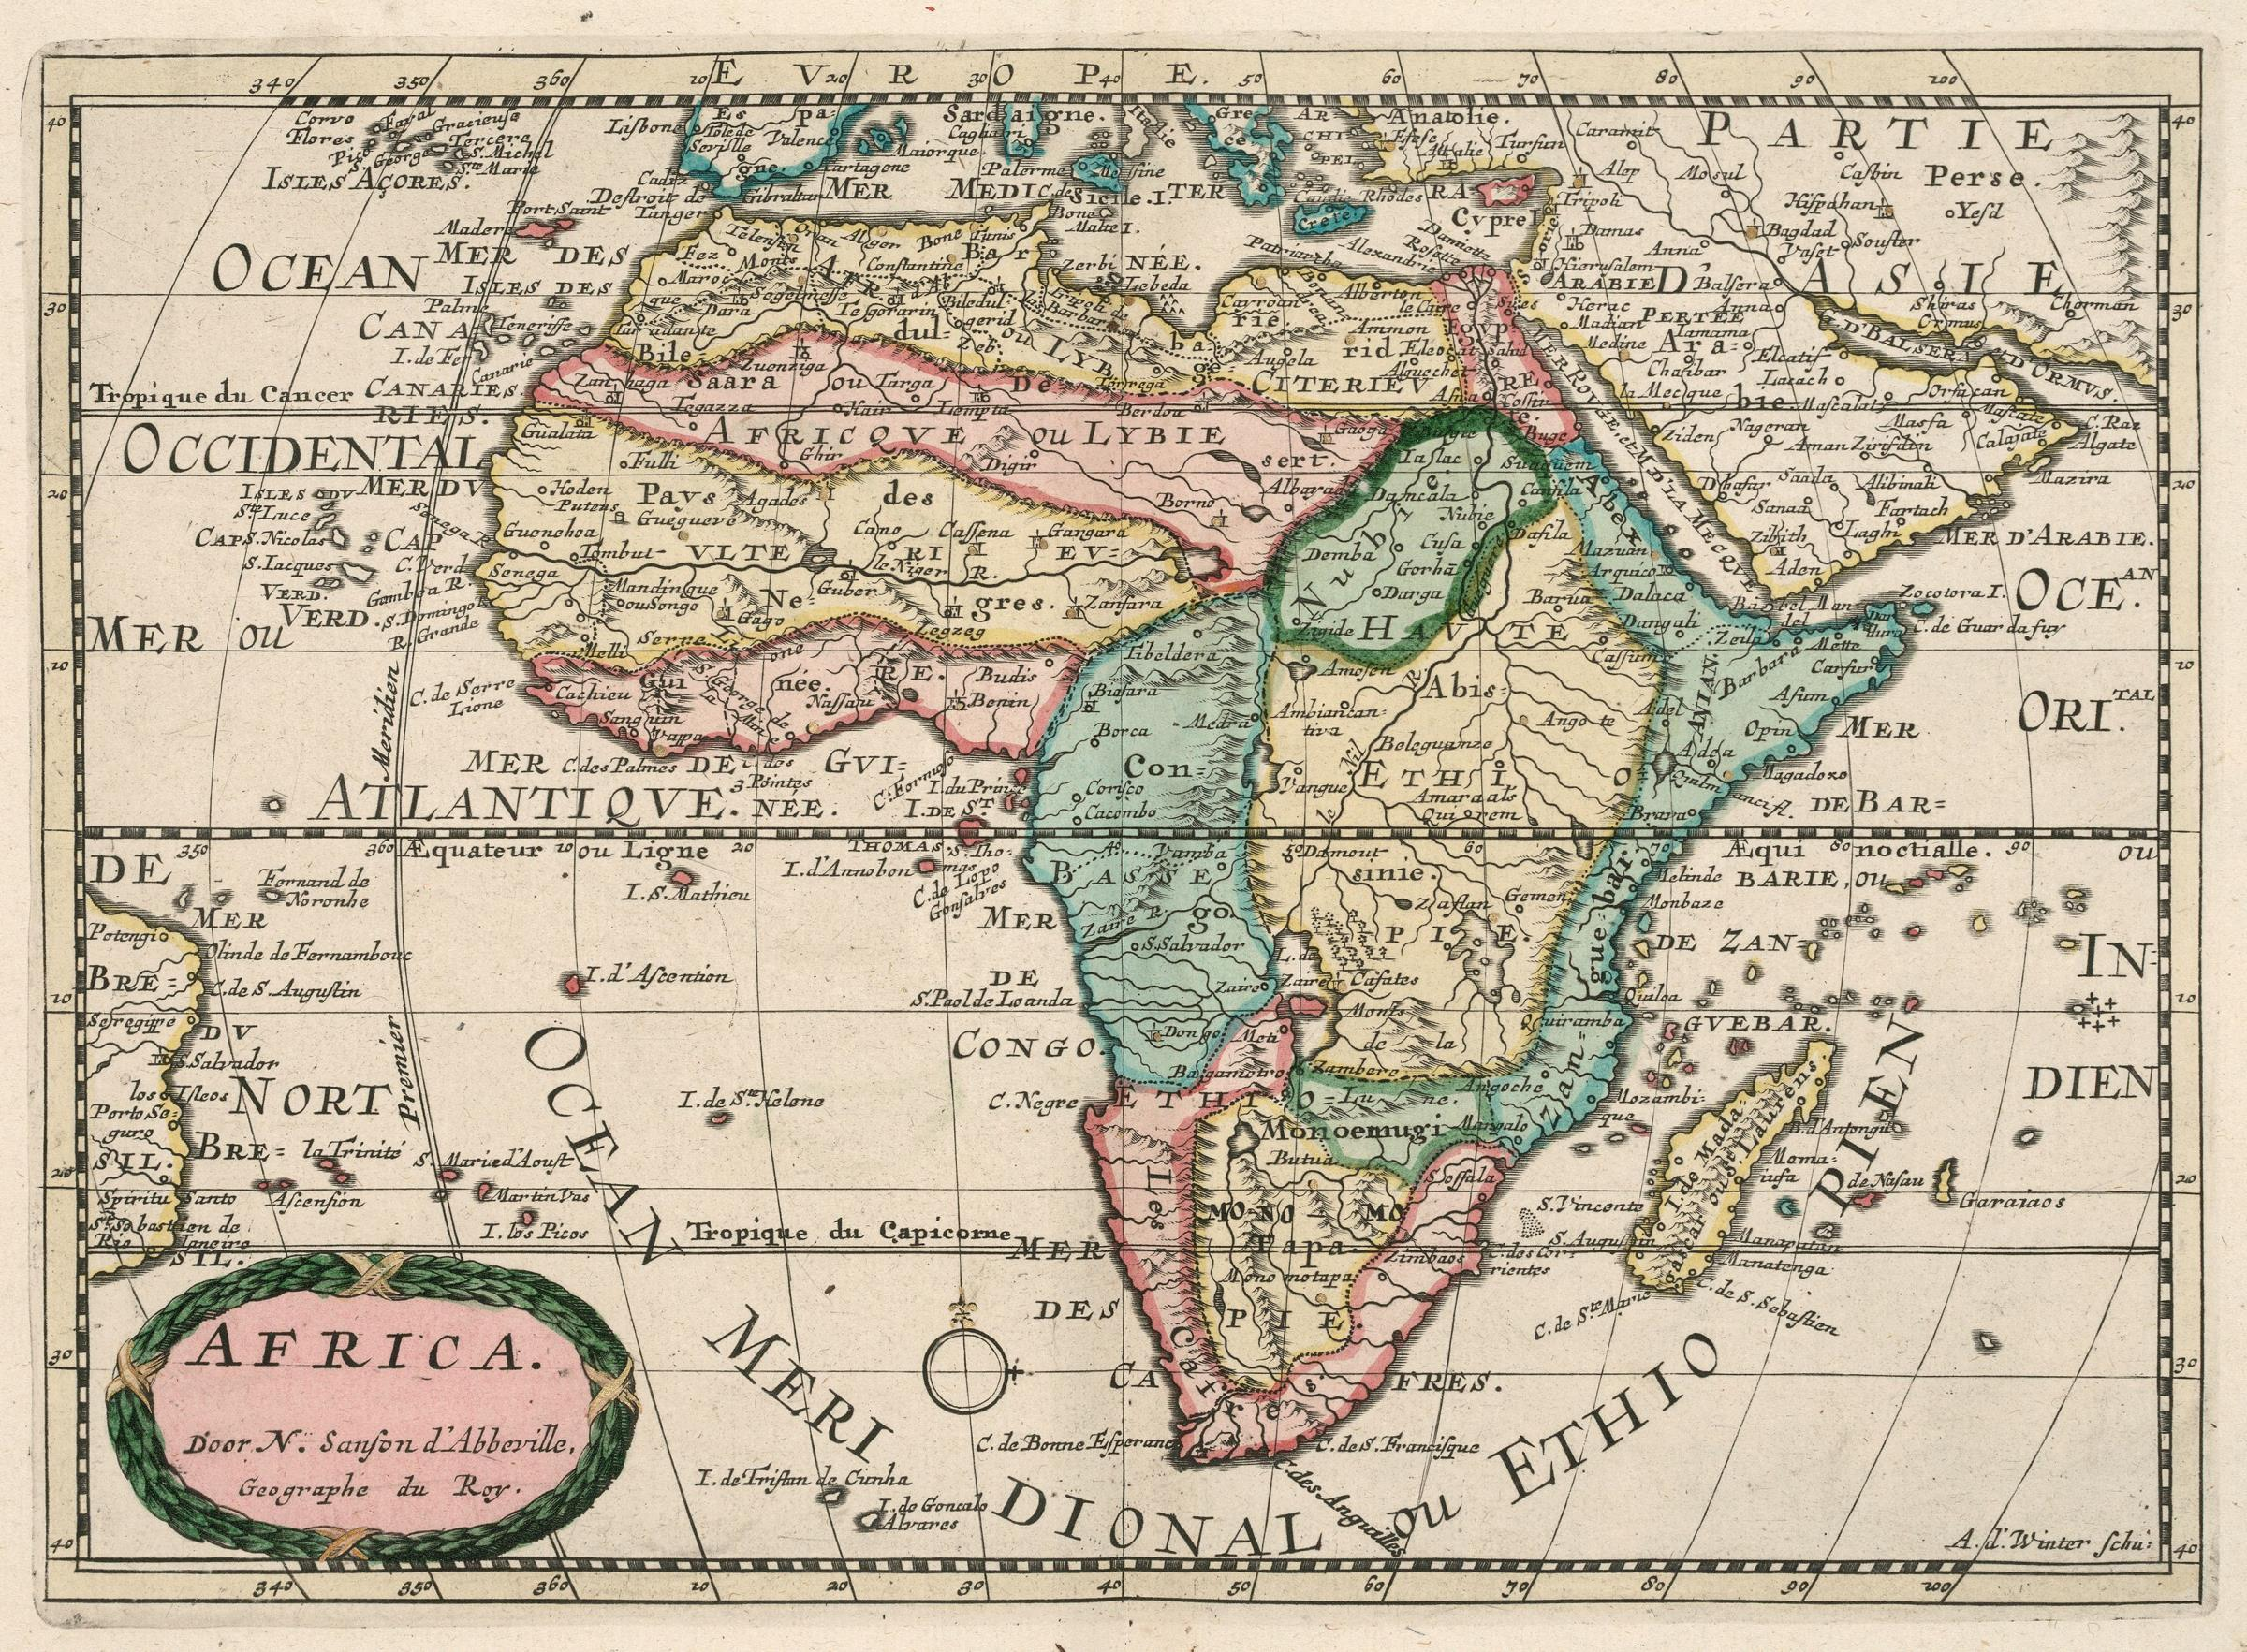 File:AMH 6673 KB Map of Africa and the Arabian peninsula.